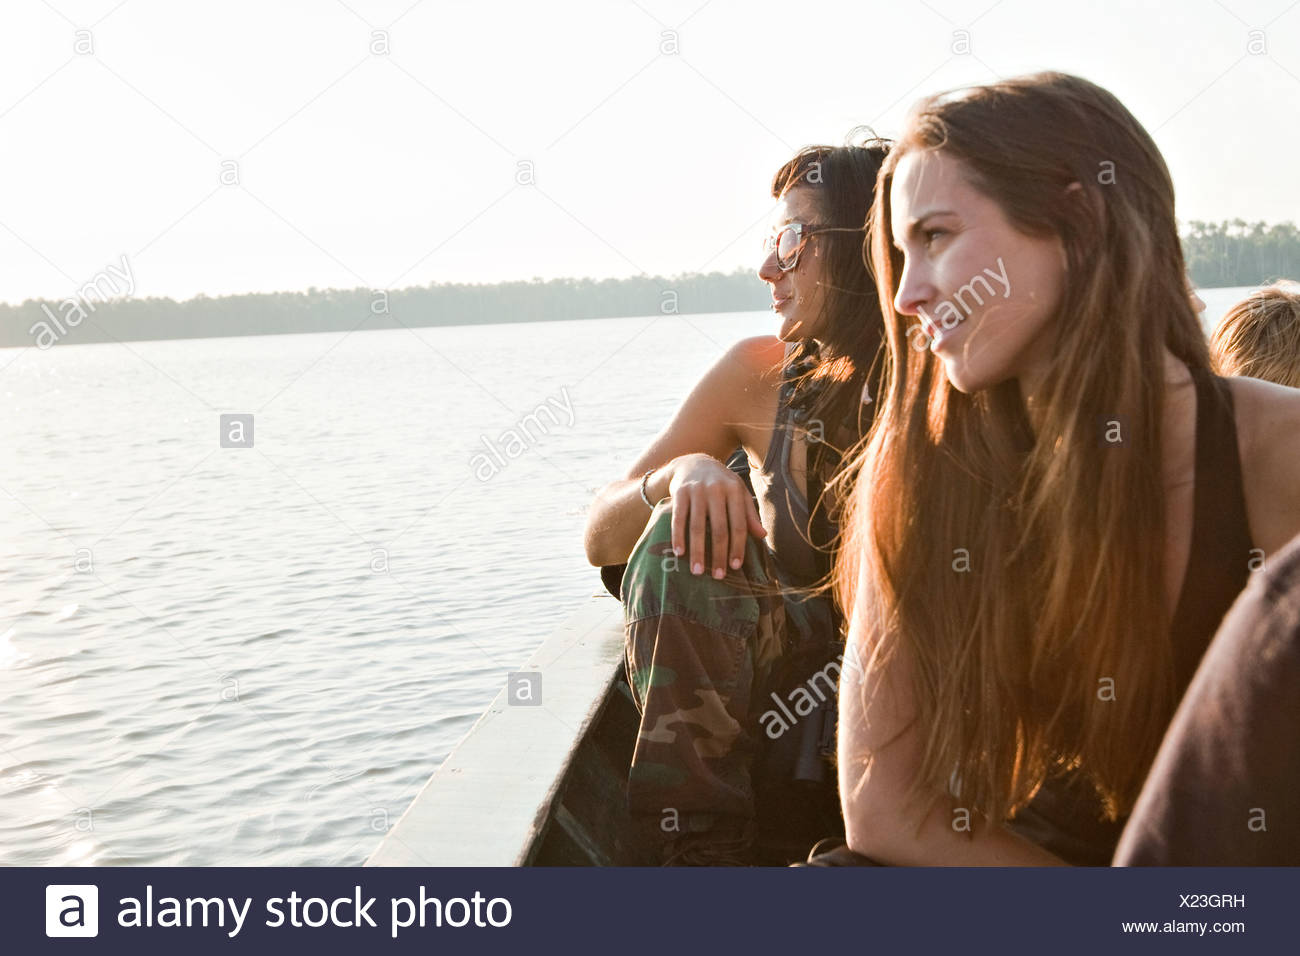 Two young women look into the sunset over Lake Sandoval, in the amazon rainforest. - Stock Image